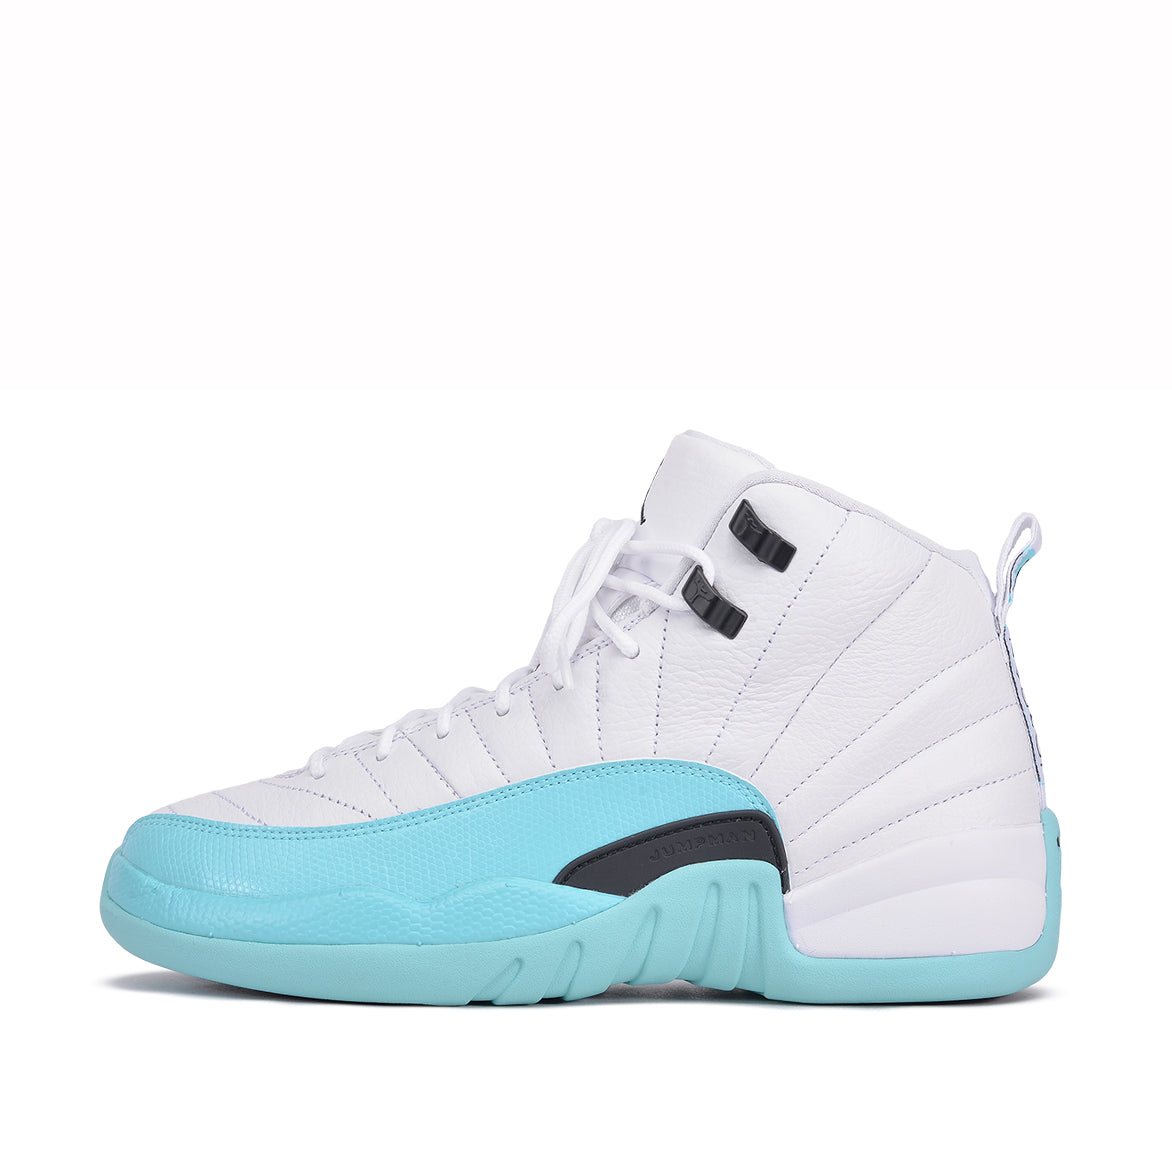 5abef6a7536c AIR JORDAN RETRO 12 (GG)